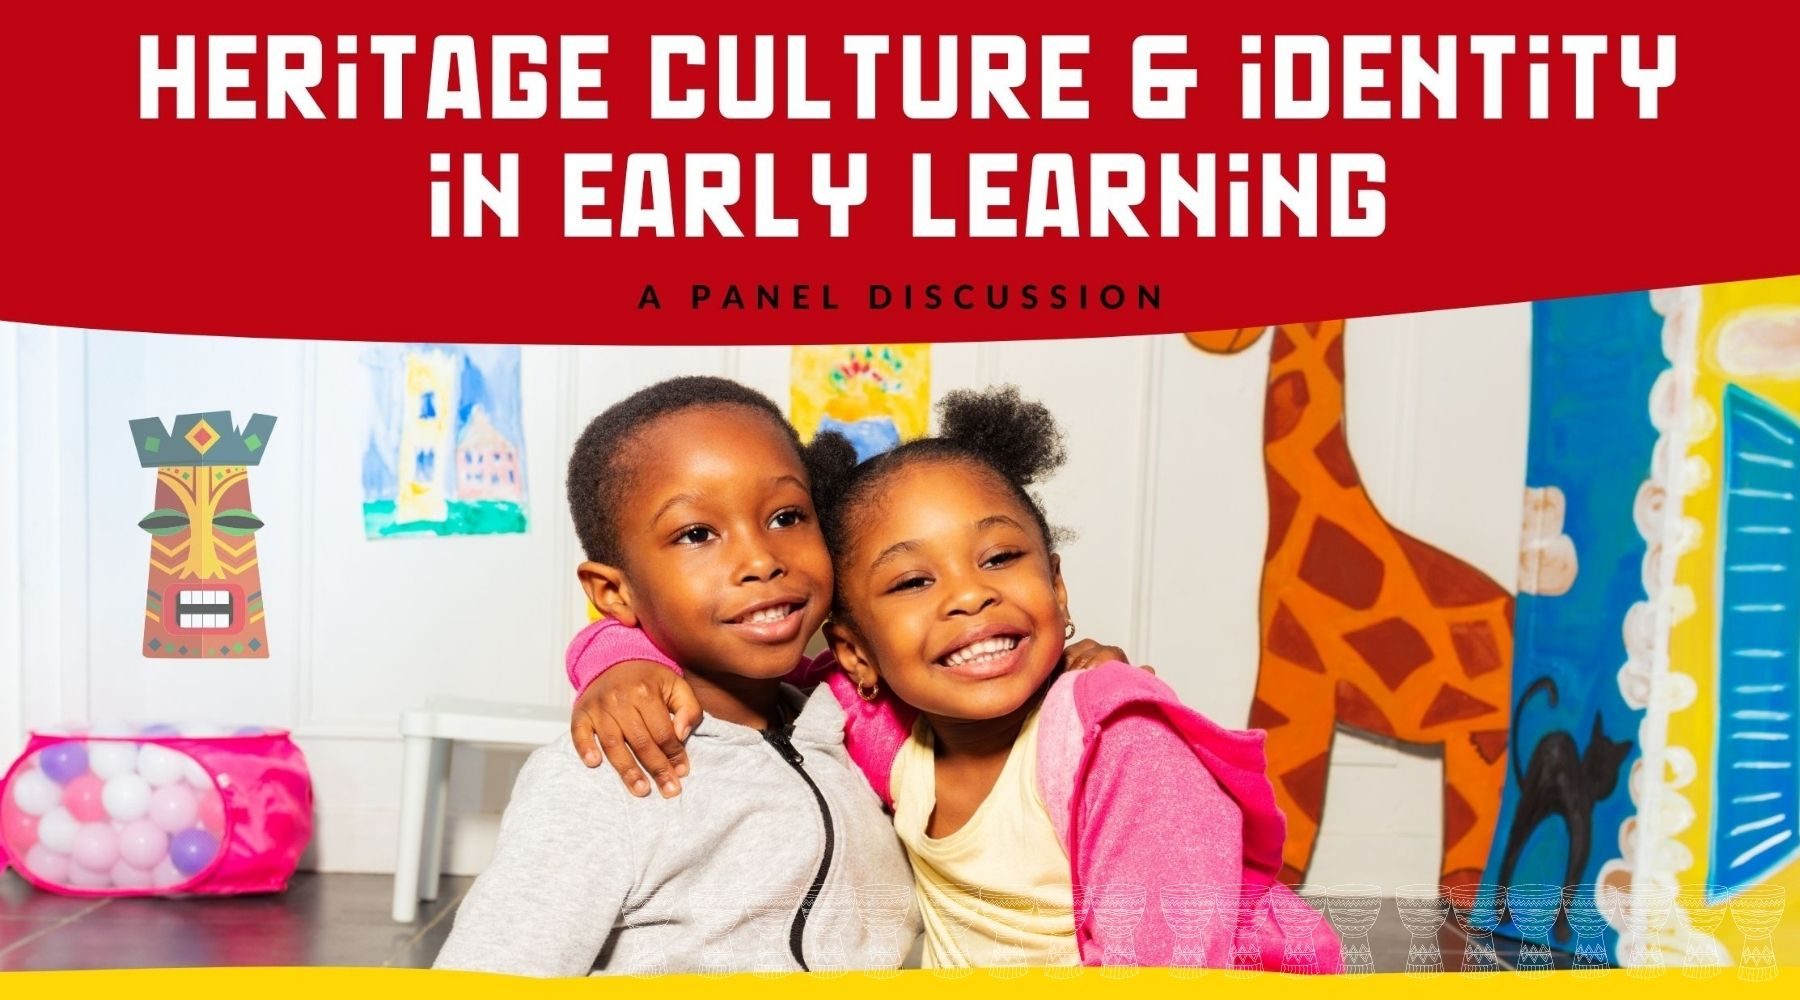 Heritage-culture-learning